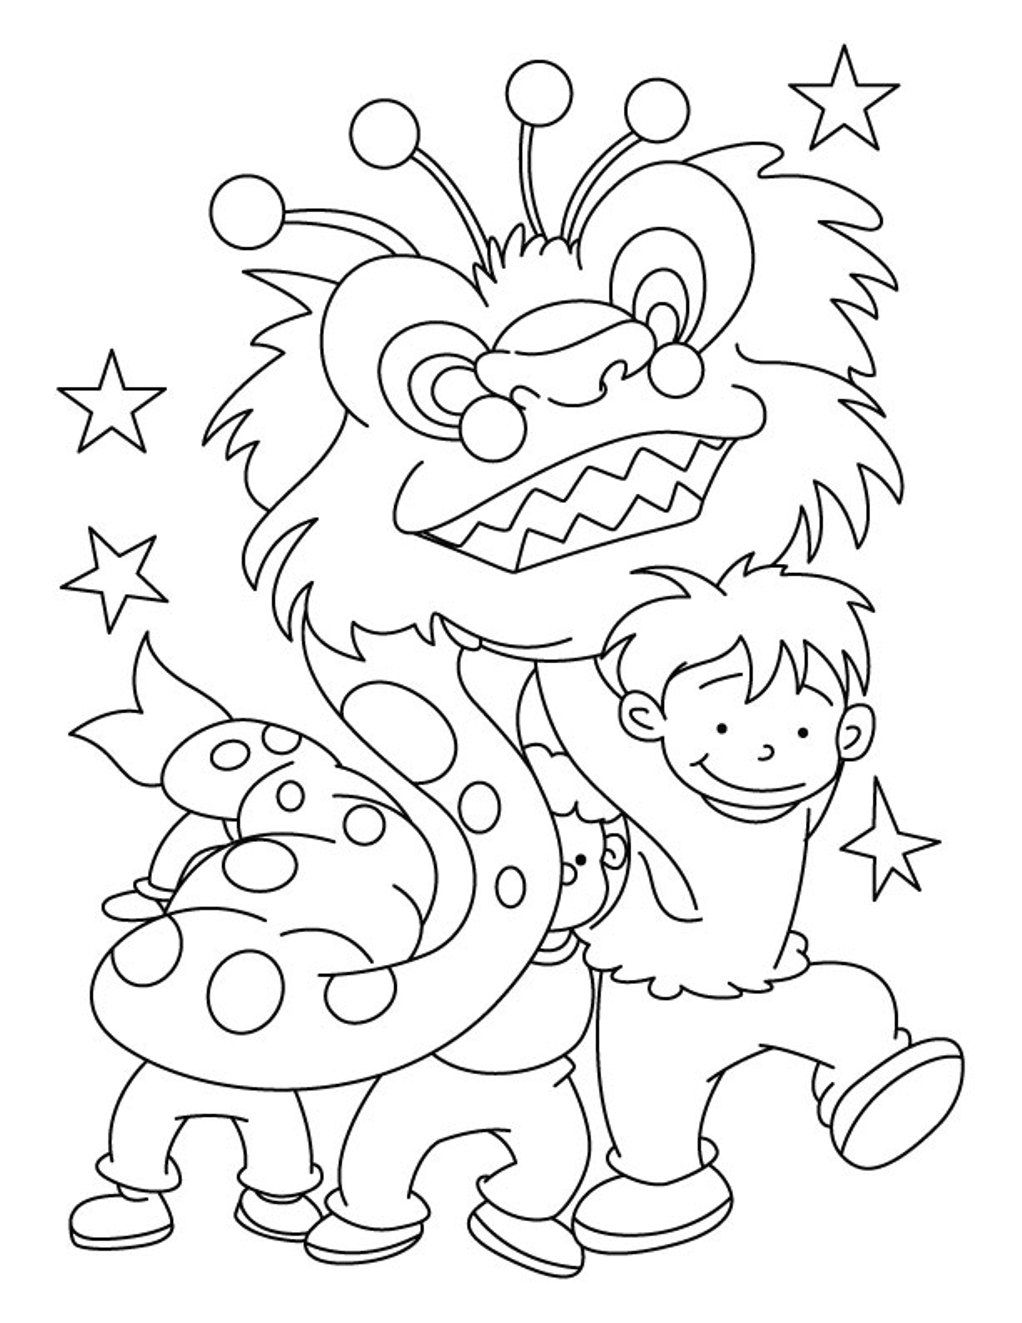 chinese dragon colouring page netart 1 place for coloring for kids part 6 colouring dragon chinese page